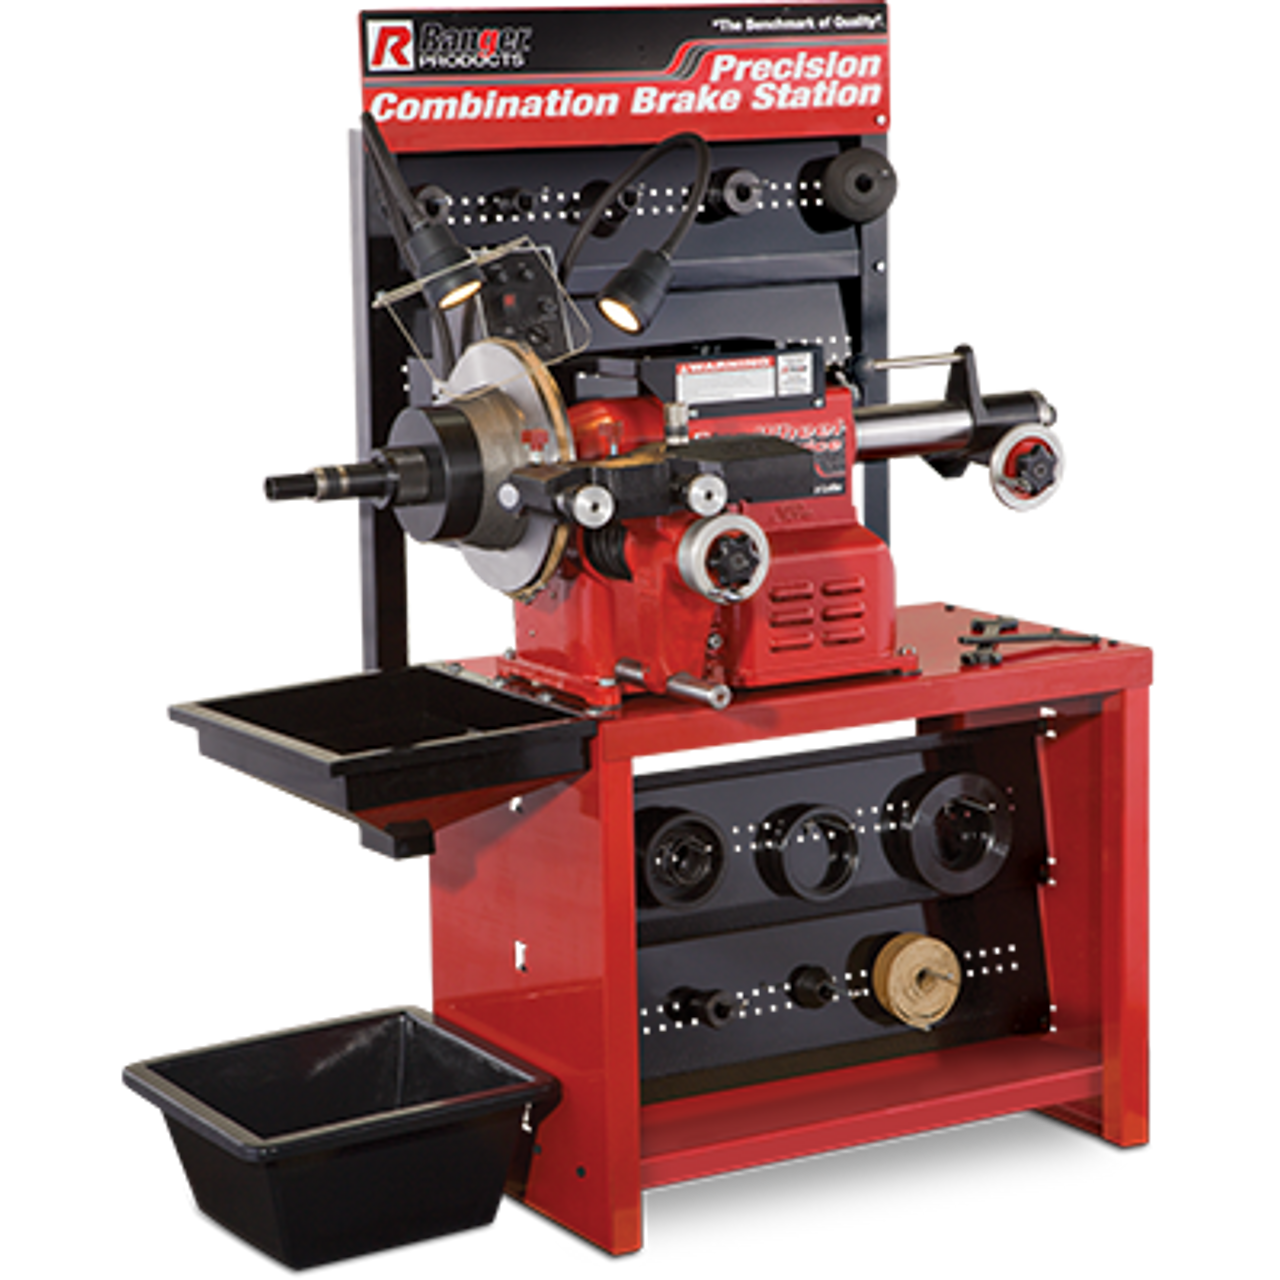 Brake-Lathe-System-RL-8500-5150066-Ranger-Products